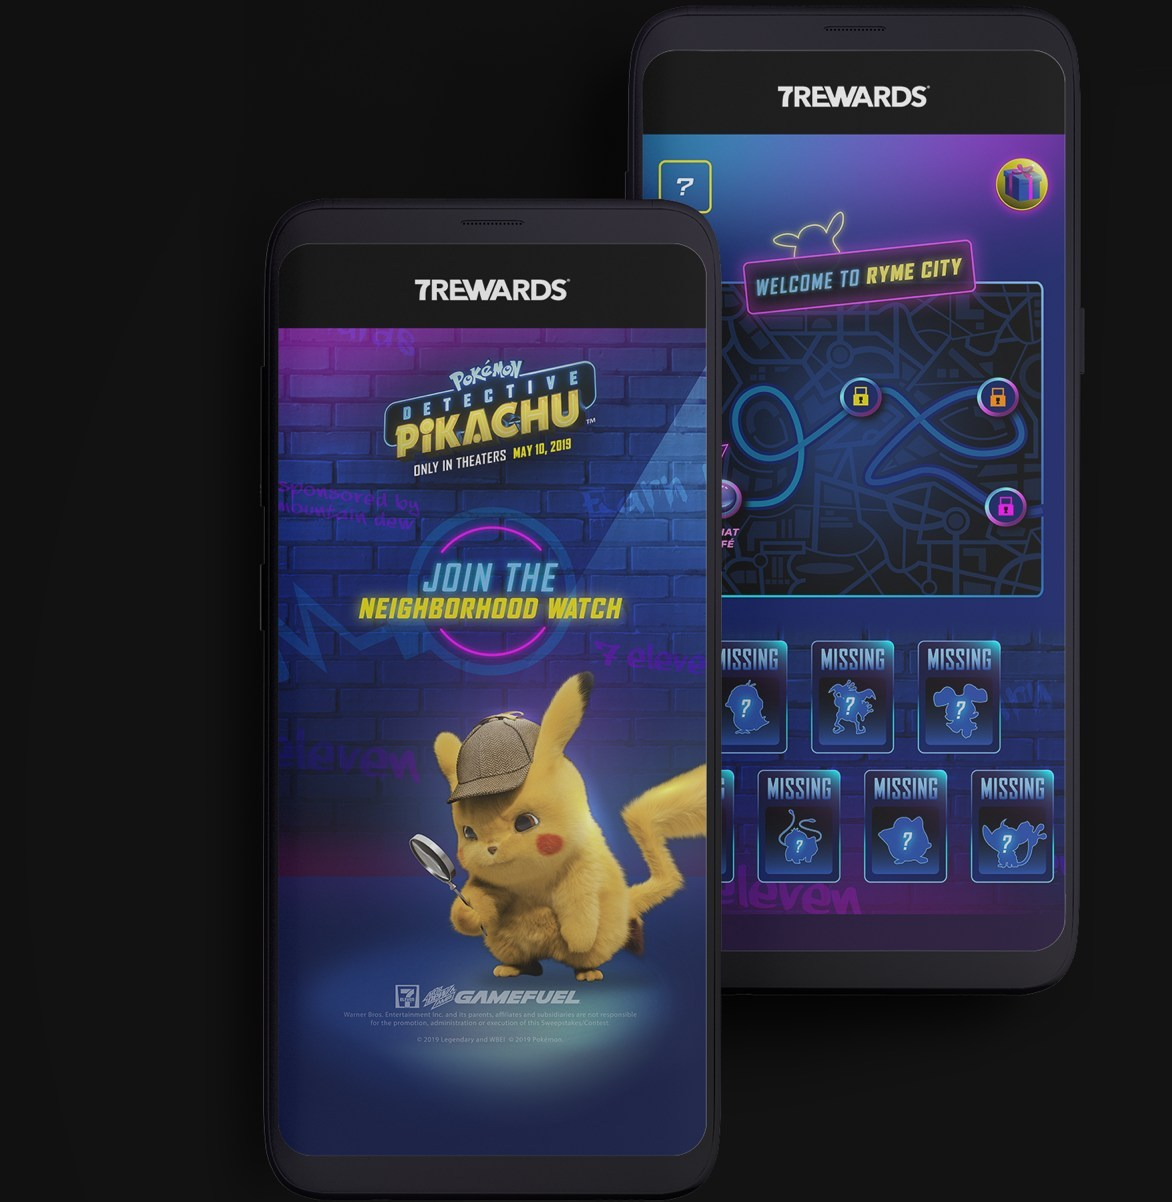 Pokémon Detective Pikachu Comes To 7 Eleven With Ar Experiences